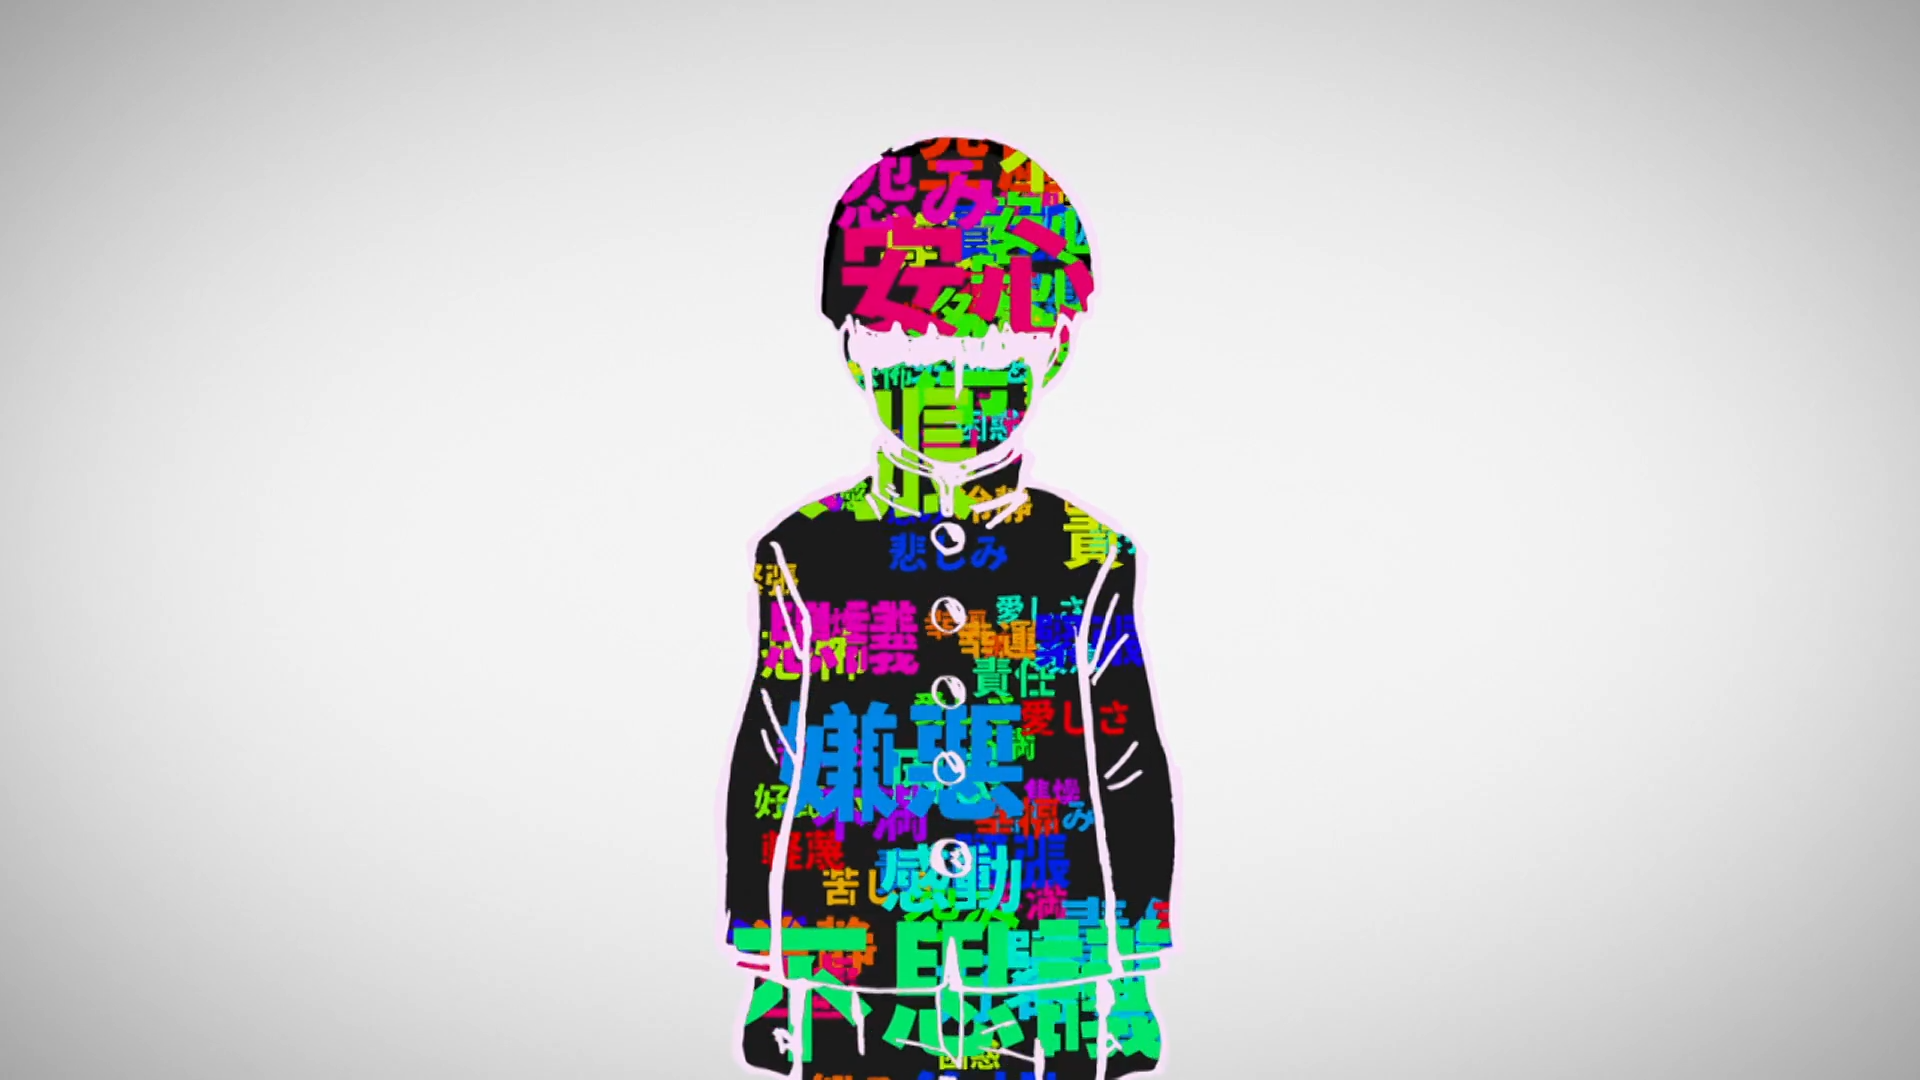 103 Mob Psycho 100 Hd Wallpapers Background Images Wallpaper Abyss